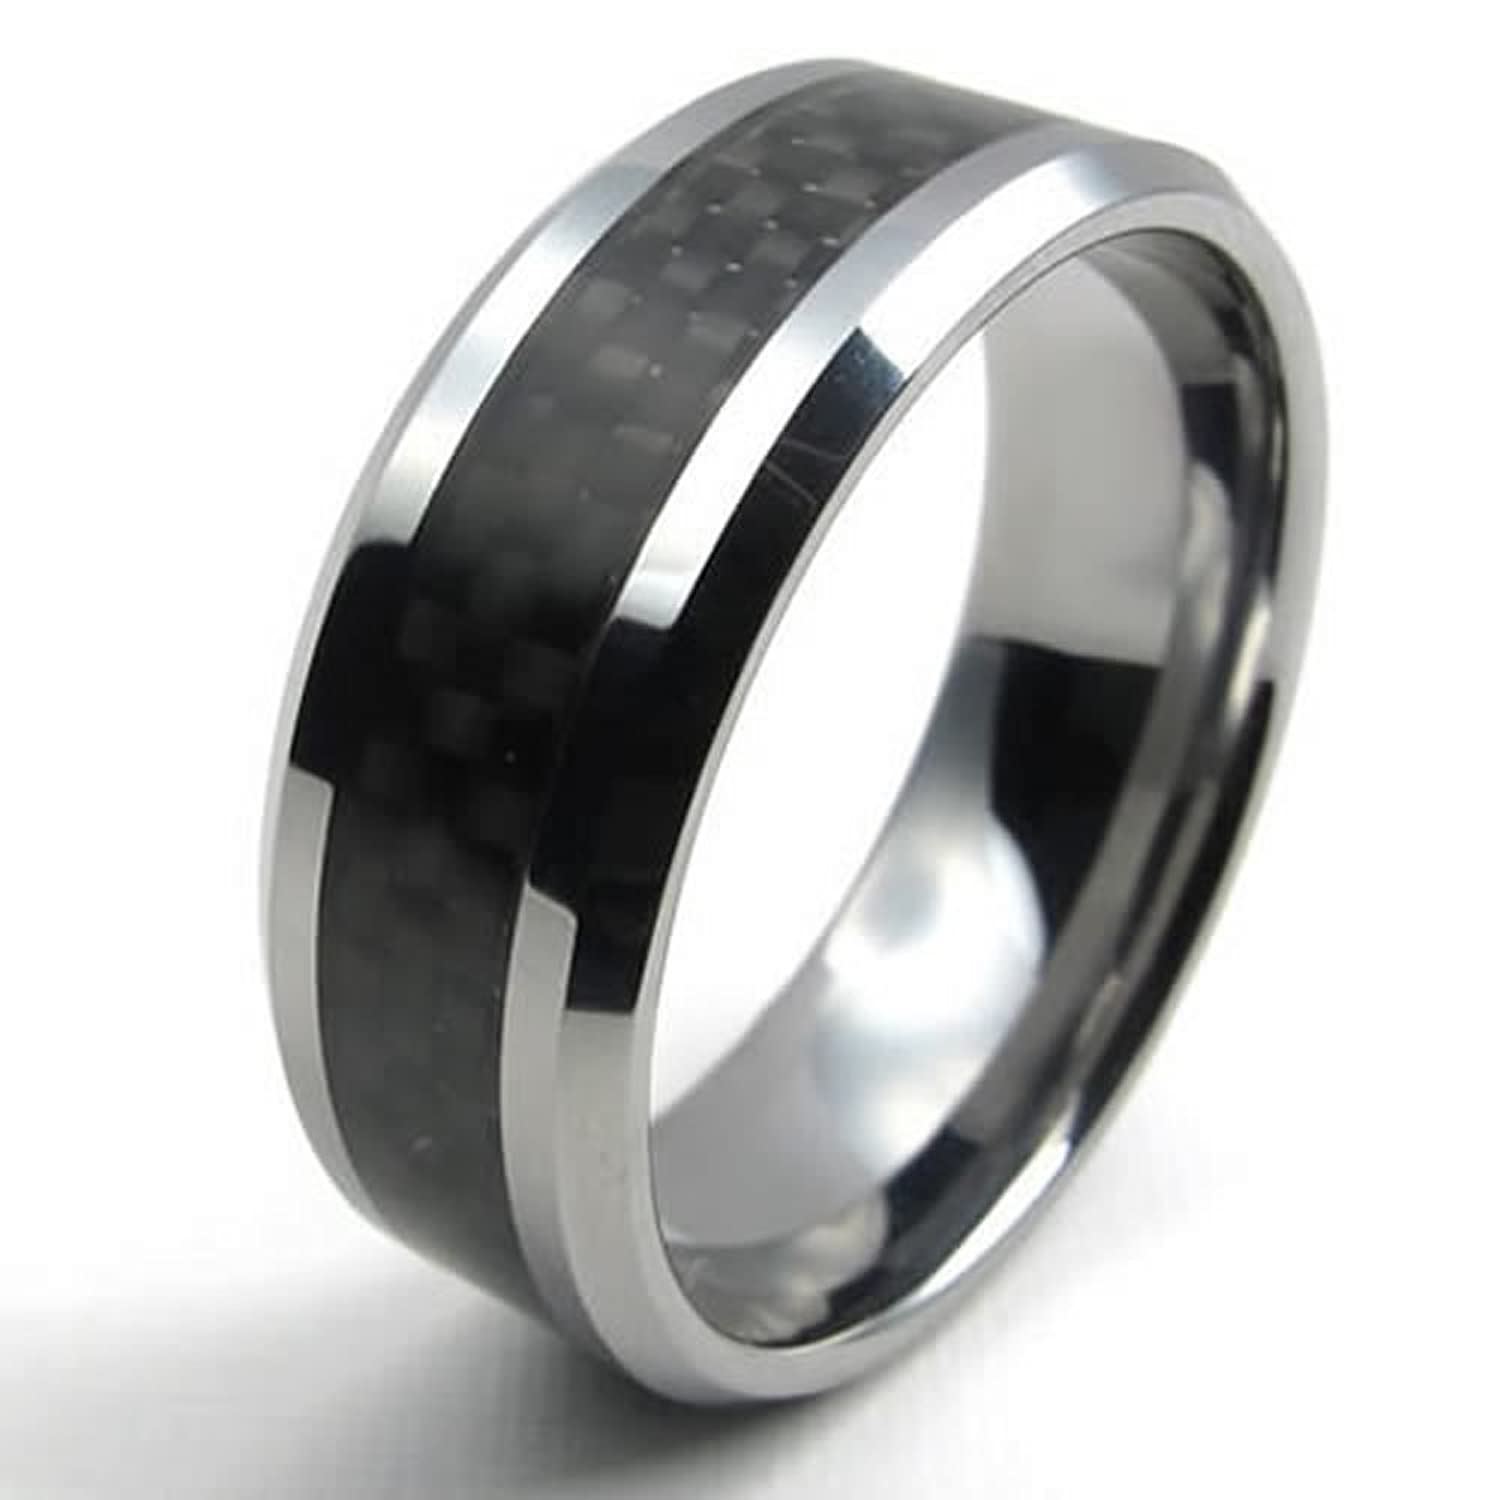 bague de mariage pour homme jv44 jornalagora. Black Bedroom Furniture Sets. Home Design Ideas